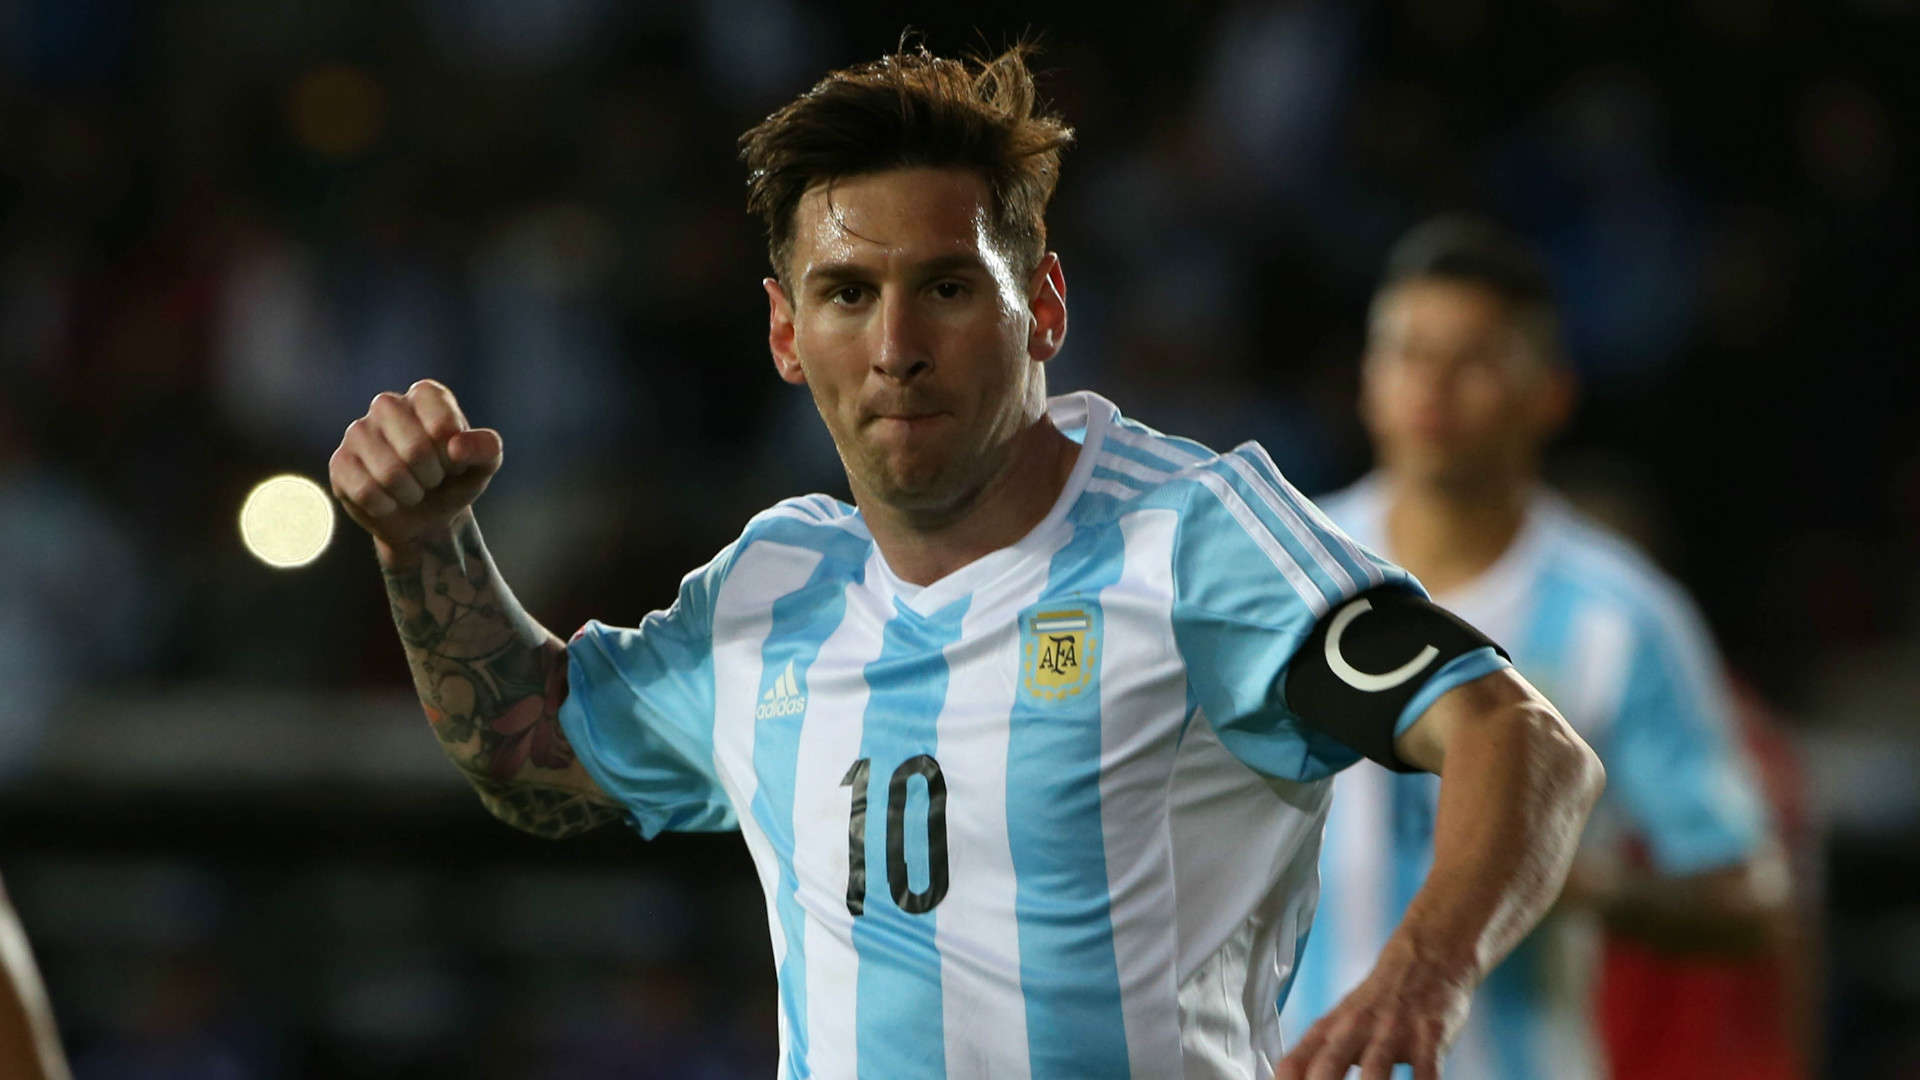 Lionel messi argentina copa america for New best pic